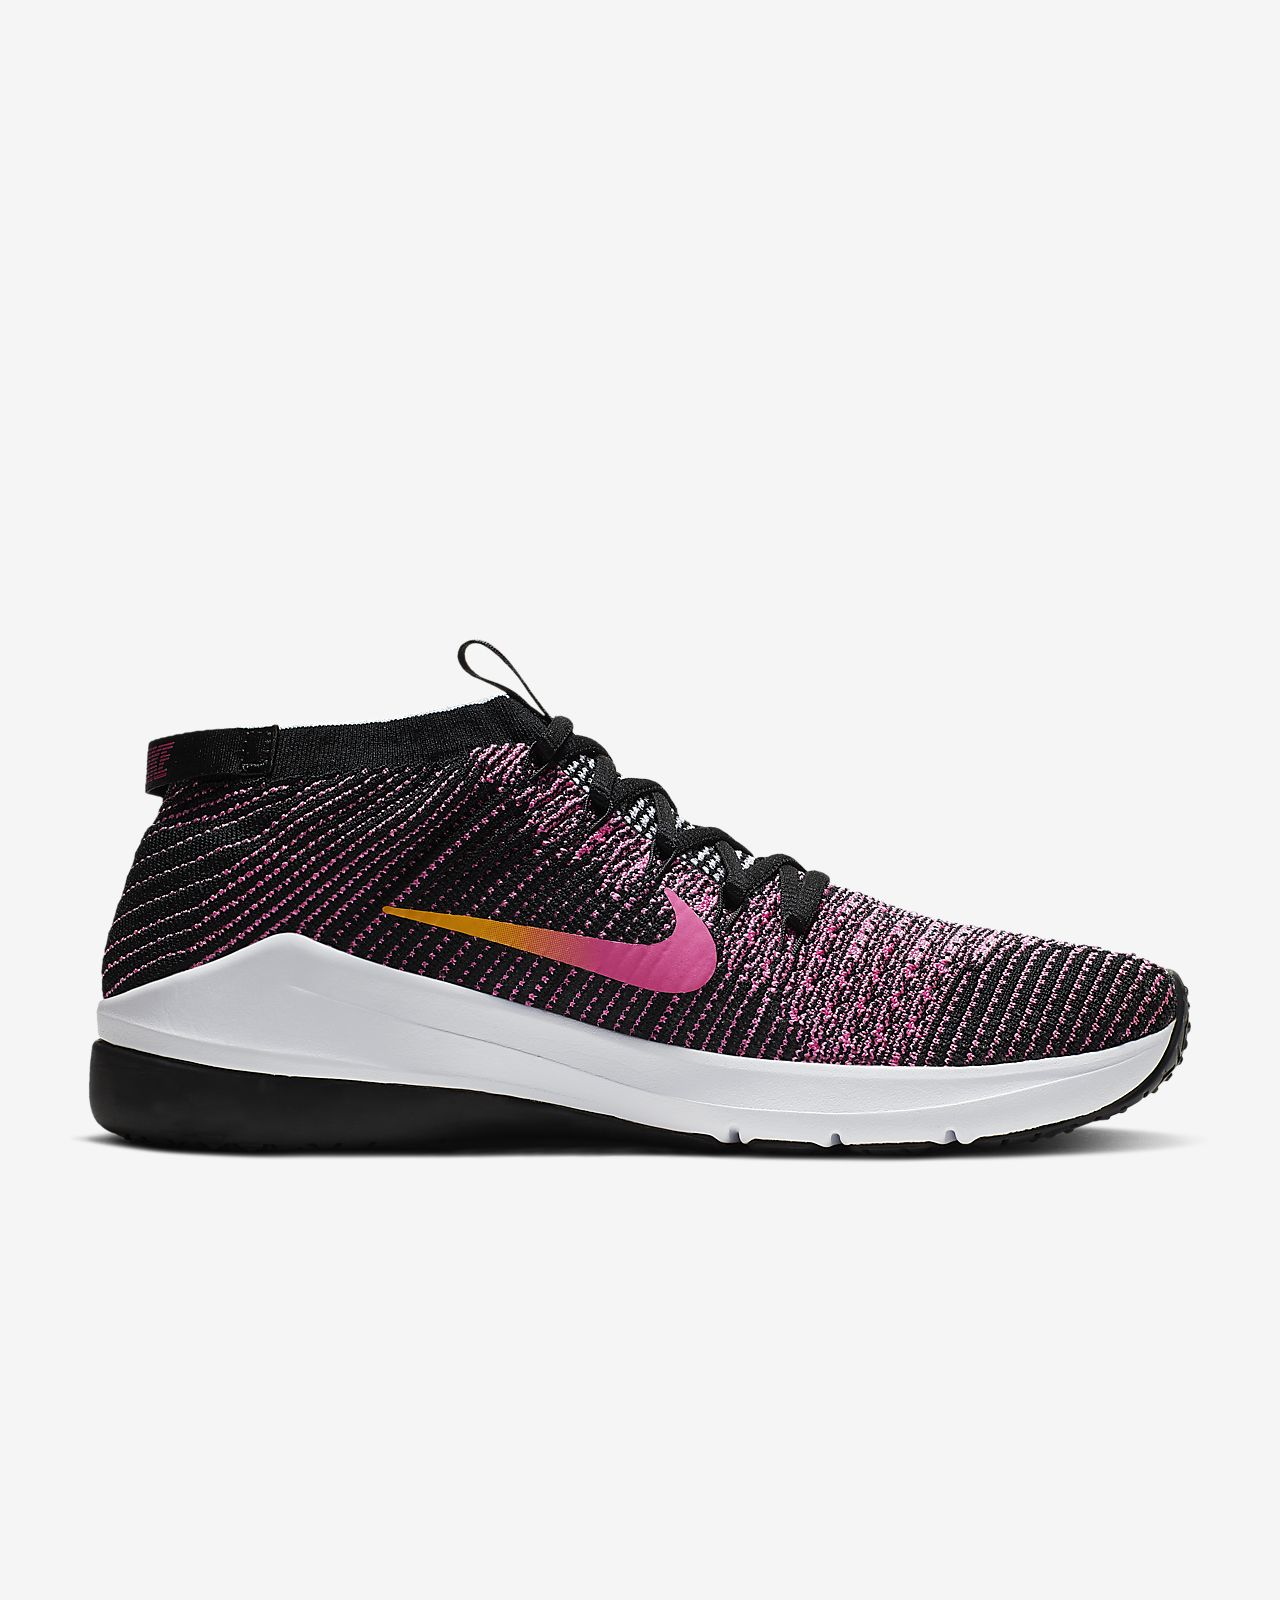 5493f2d7afb8 Nike Air Zoom Fearless Flyknit 2 Women s Gym Training Boxing Shoe ...